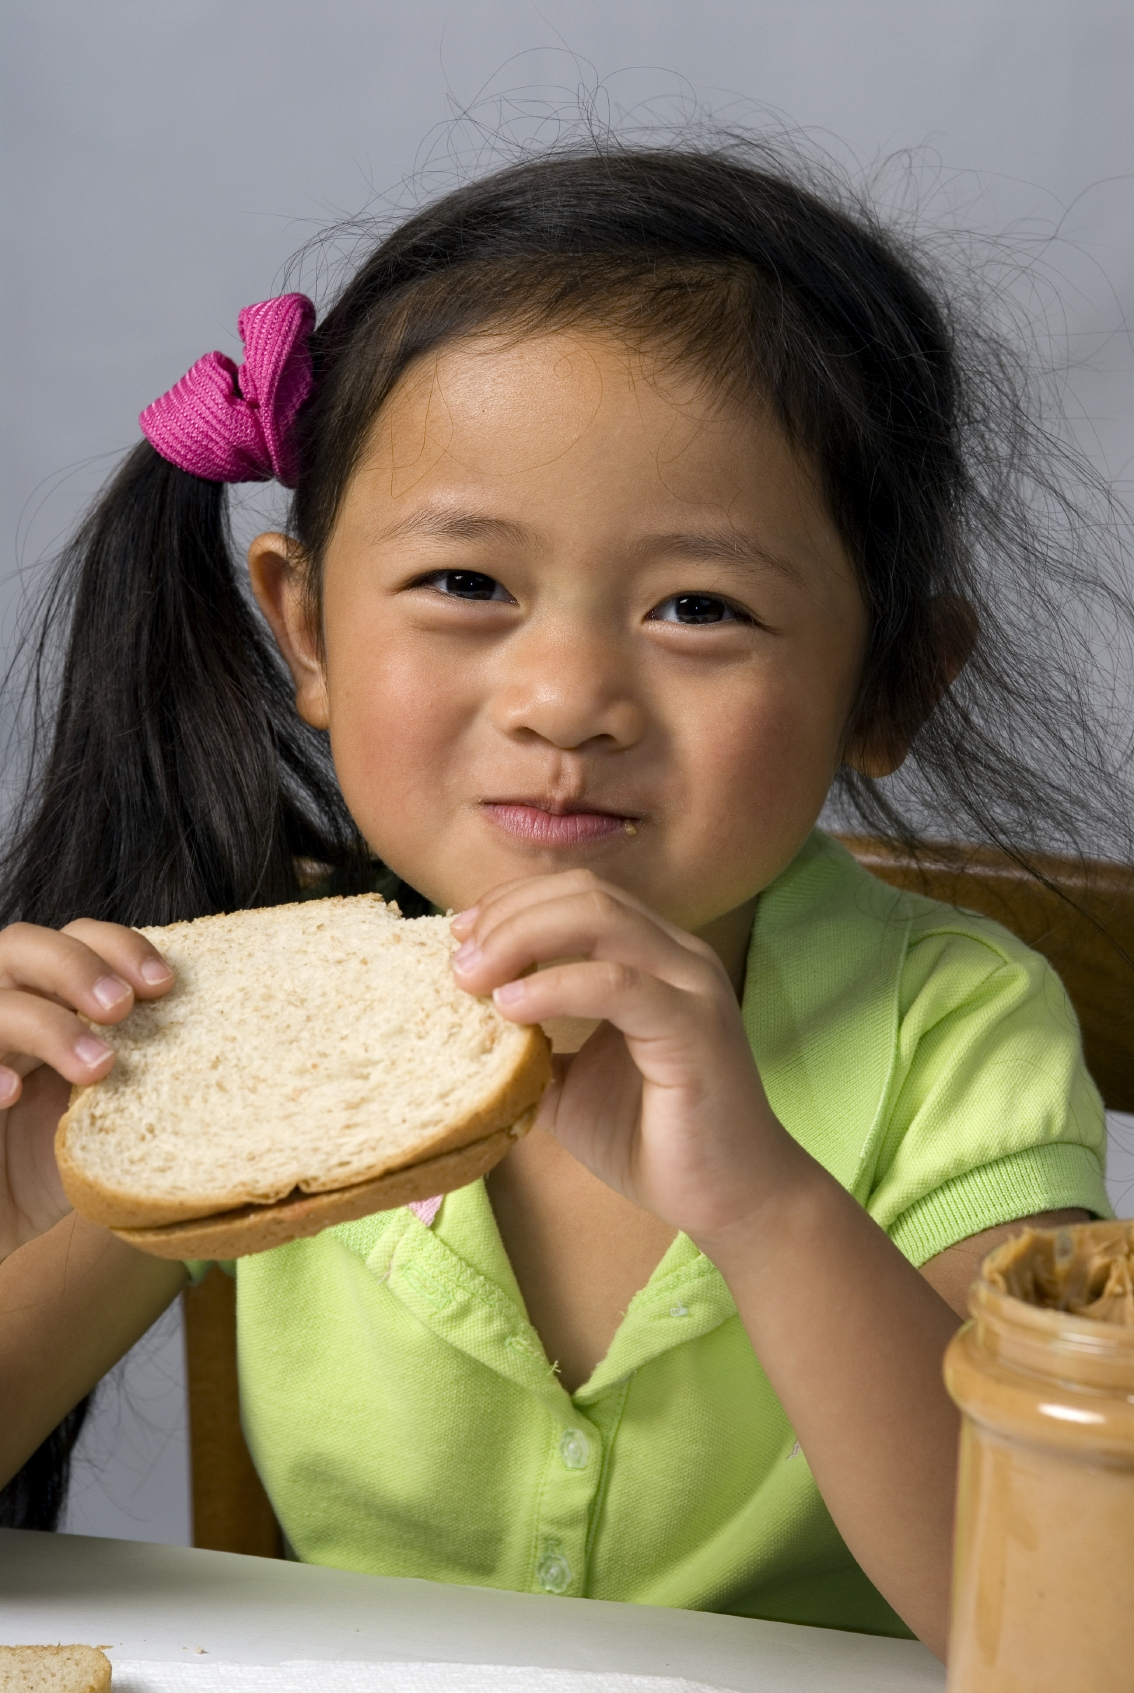 A young child makes a peanut butter and Jelly sandwich